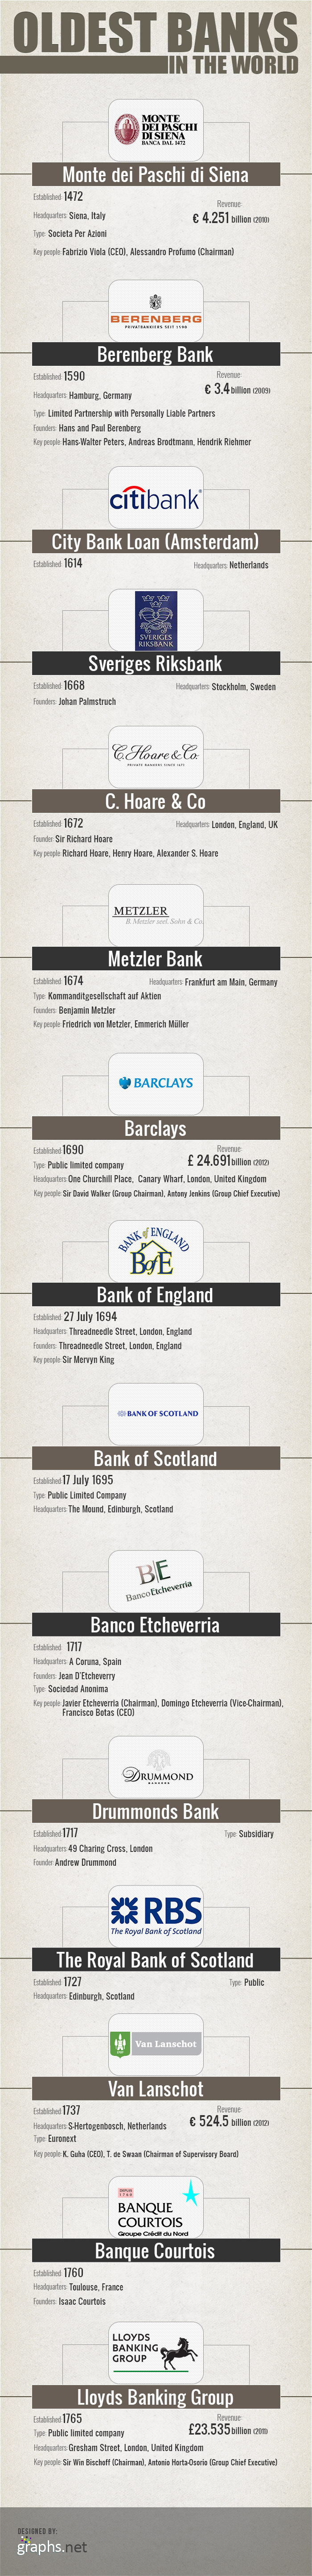 Oldest Banks in the World